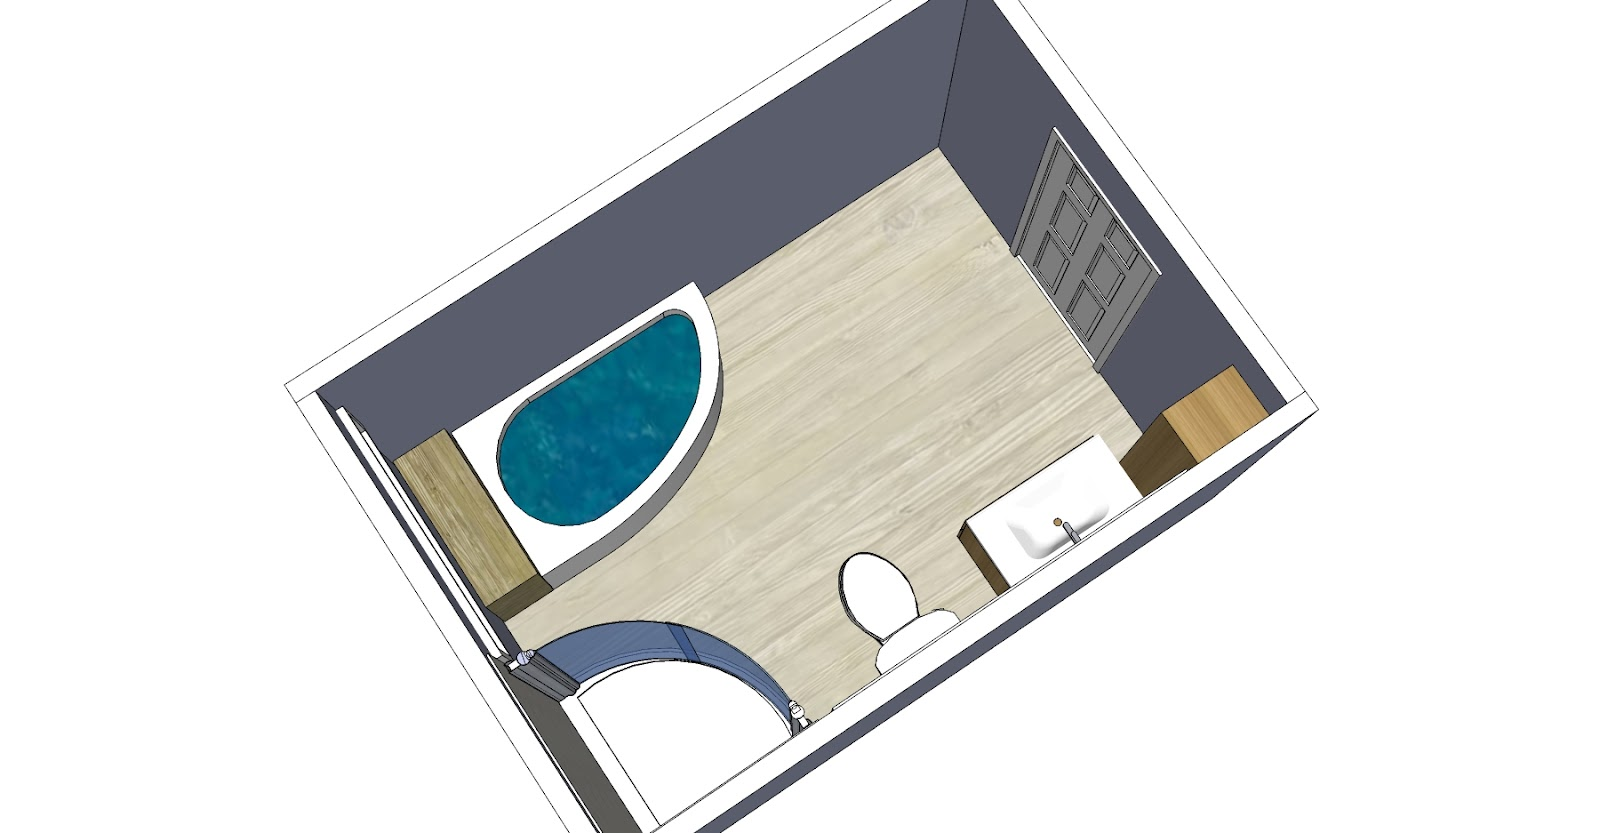 6 X 6 Bathroom Layout http://bayviewbathroom.blogspot.com/